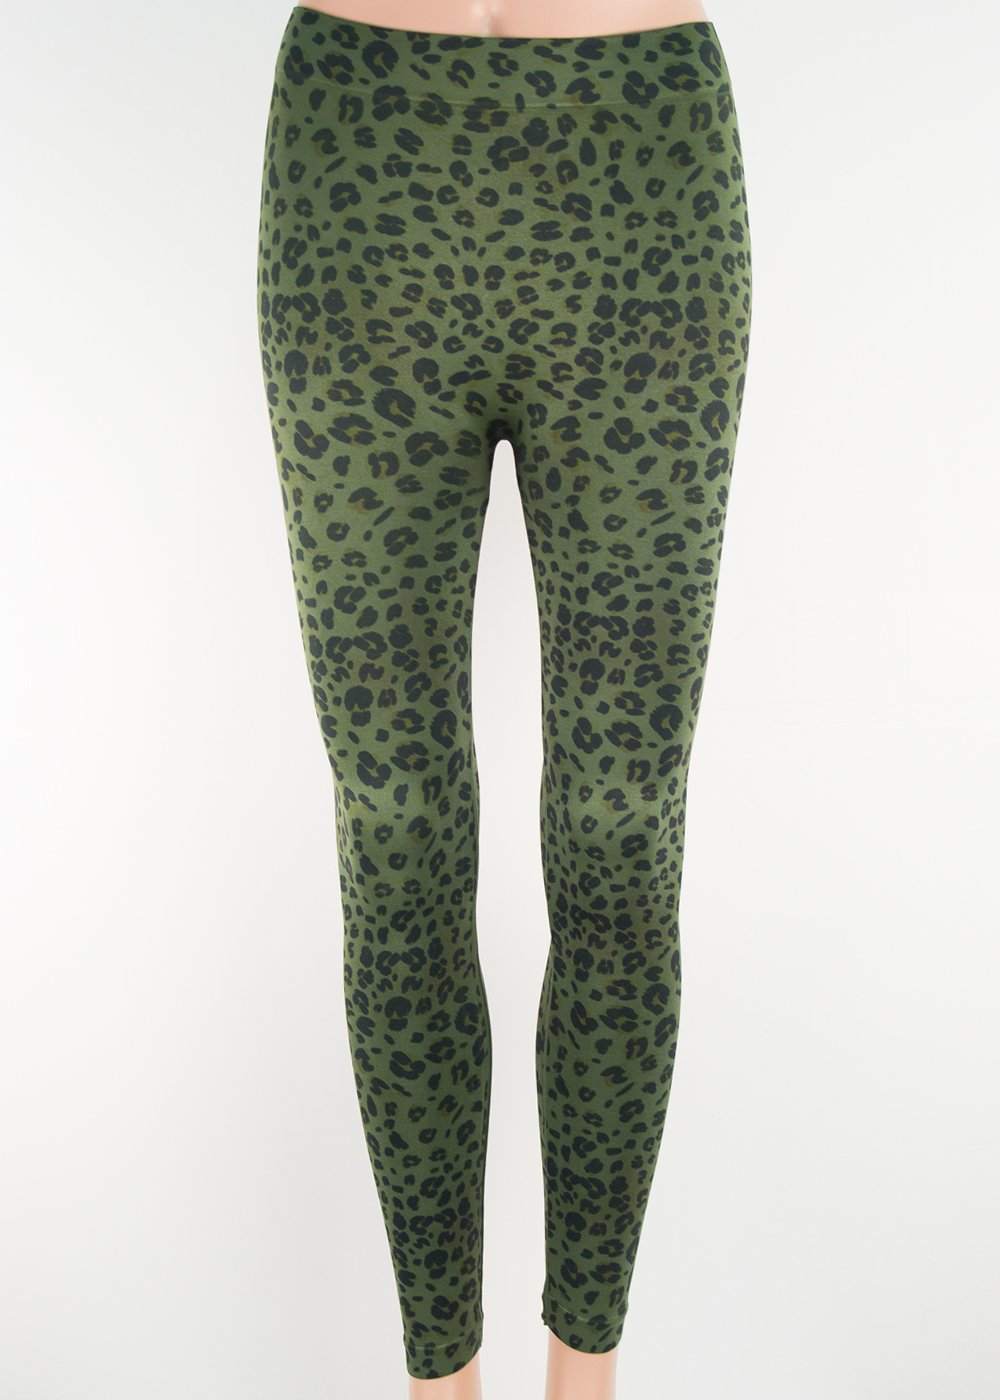 Baby Leopard Long Leggings